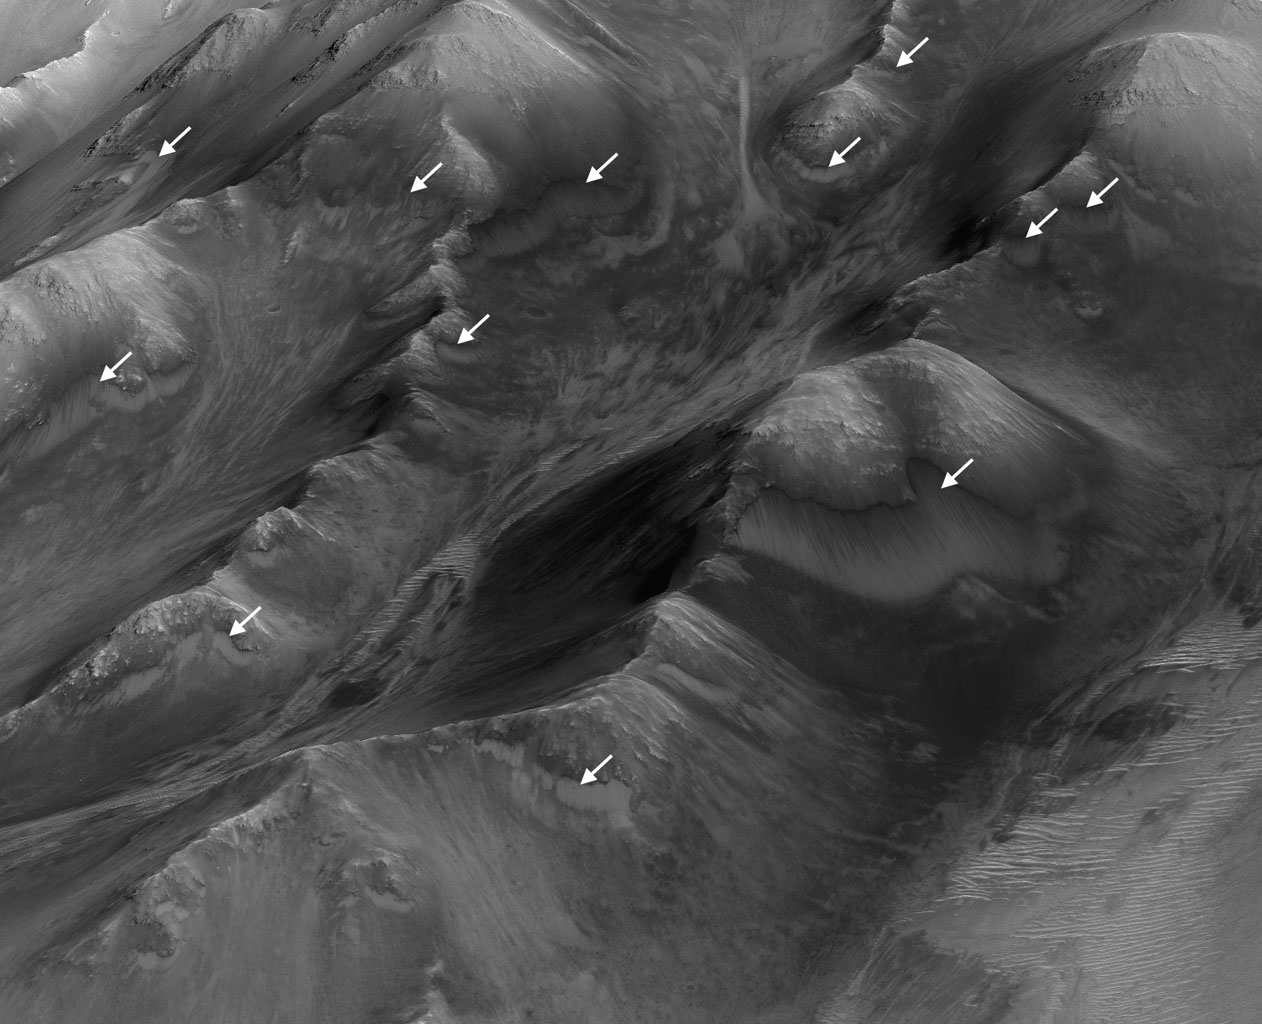 The white arrows indicate locations in this scene where numerous seasonal dark streaks have been identified in the Coprates Montes area of Mars' Valles Marineris by NASA's repeated MRO observations from orbit.